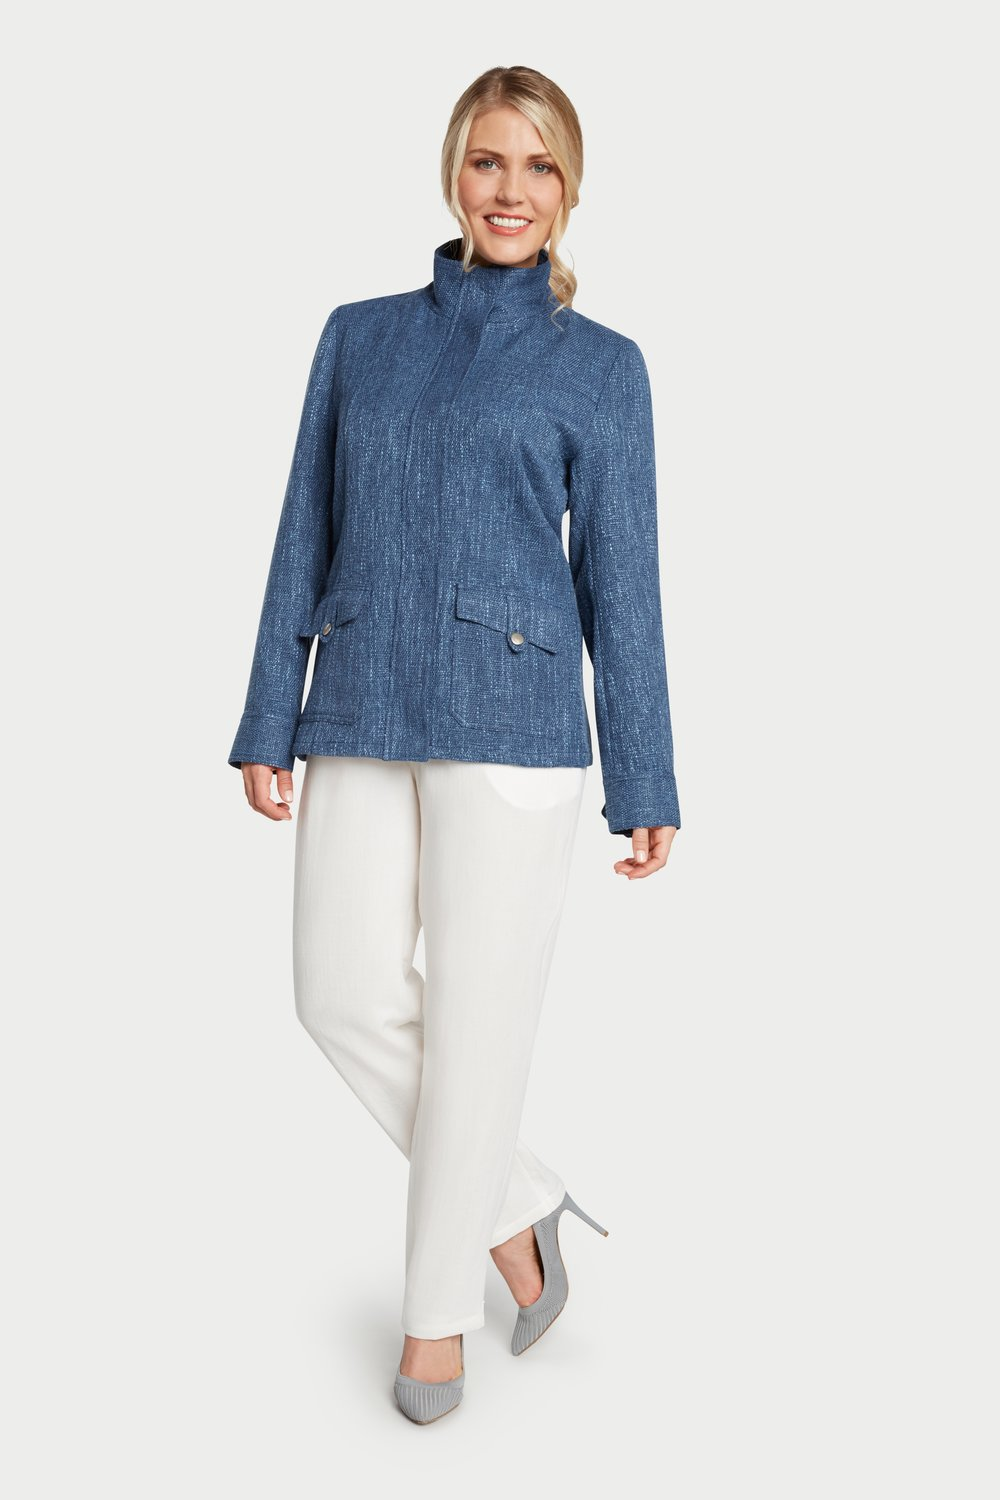 AA8009 - Donna Jacket    SG31 - French Blue